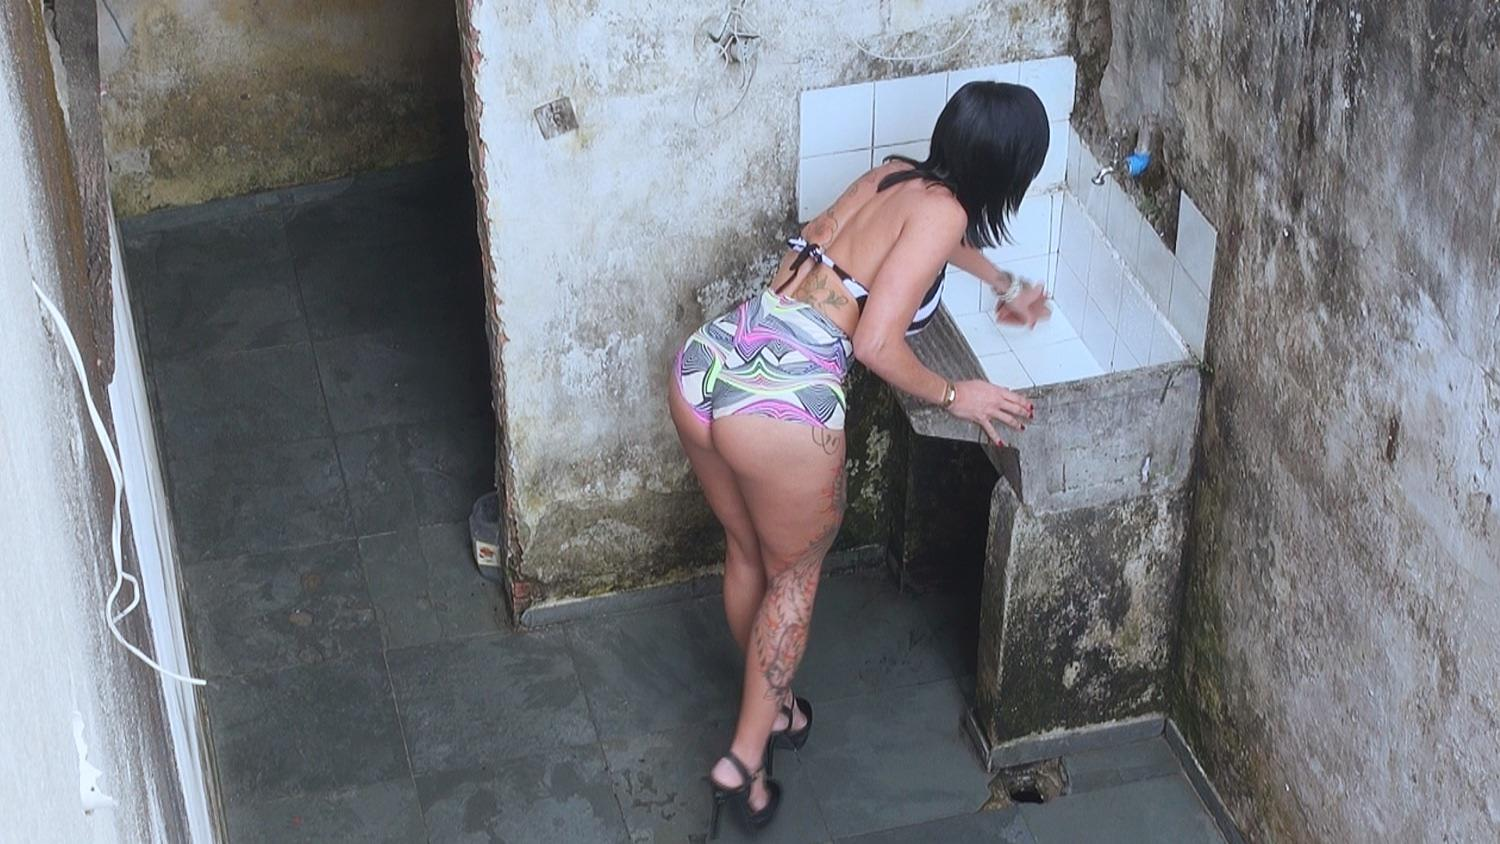 Latin,Voyeur,Brazilian,Big Butts,Portuguese,Teste de Fudelidade,HD Videos